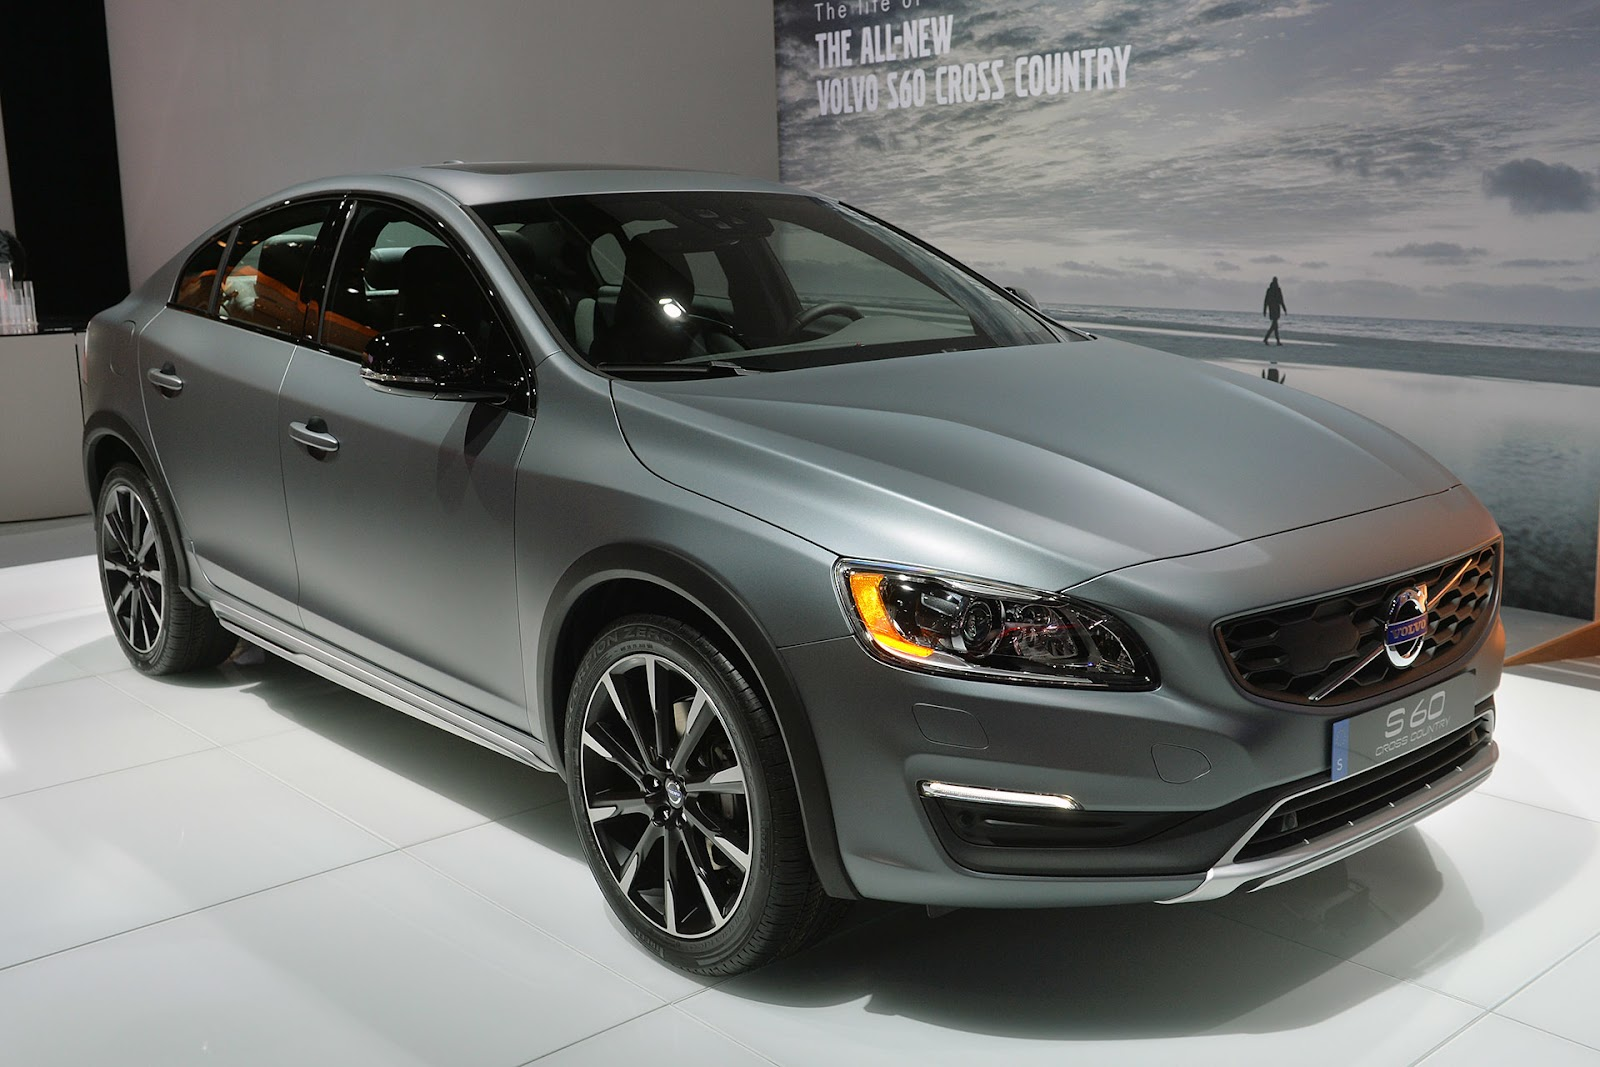 2016 volvo s60 cross country detroit 39 te tan t ld turkeycarblog. Black Bedroom Furniture Sets. Home Design Ideas